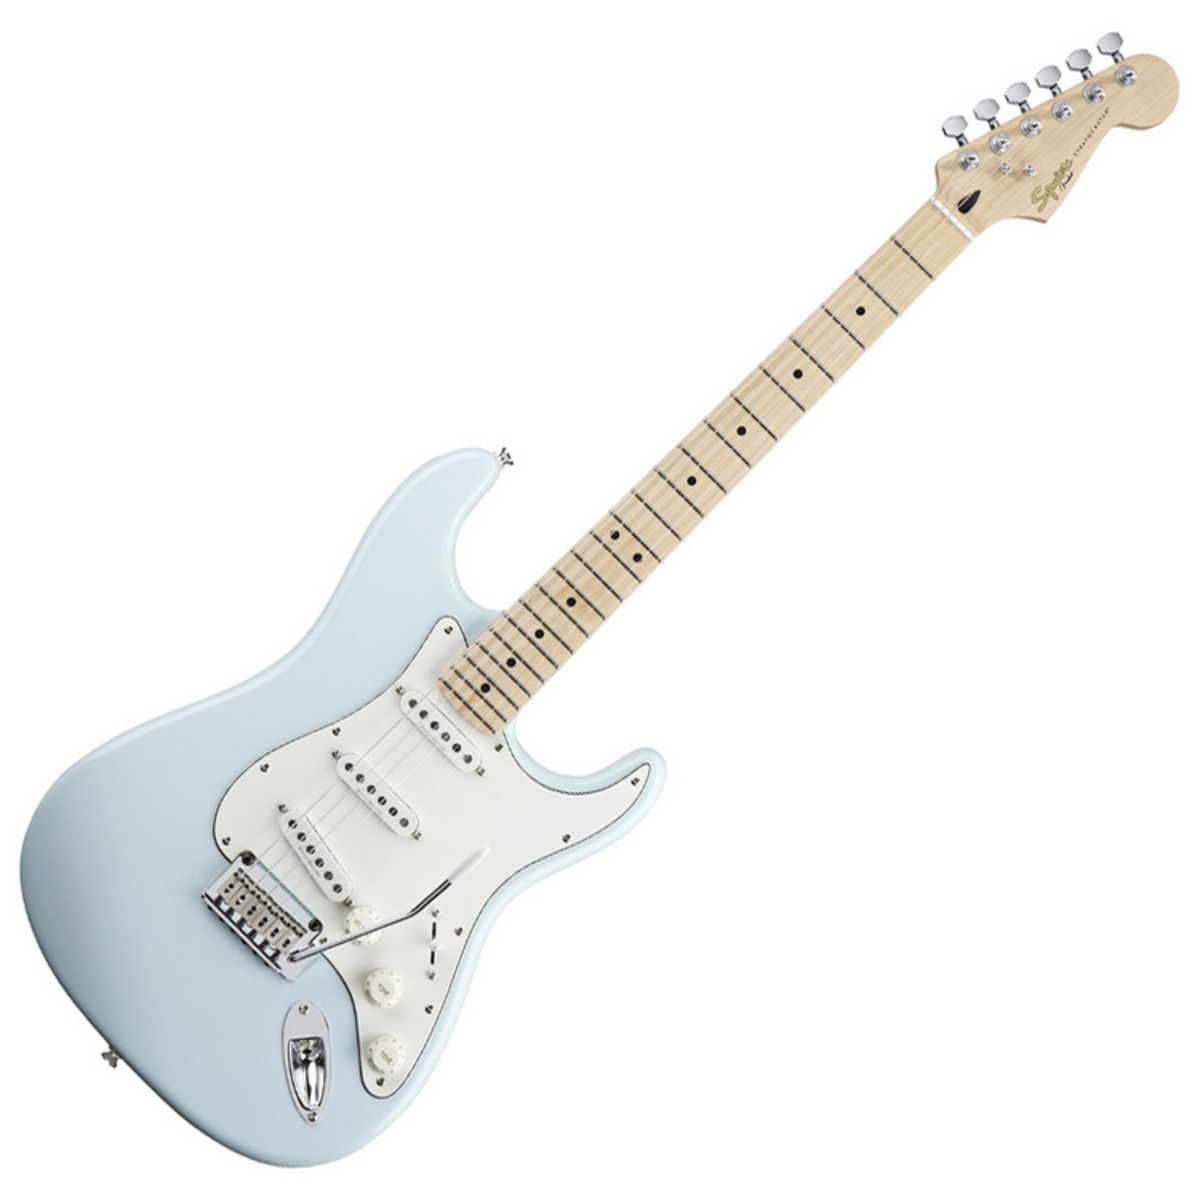 squier by fender deluxe stratocaster electric guitar mn daphne blue at. Black Bedroom Furniture Sets. Home Design Ideas